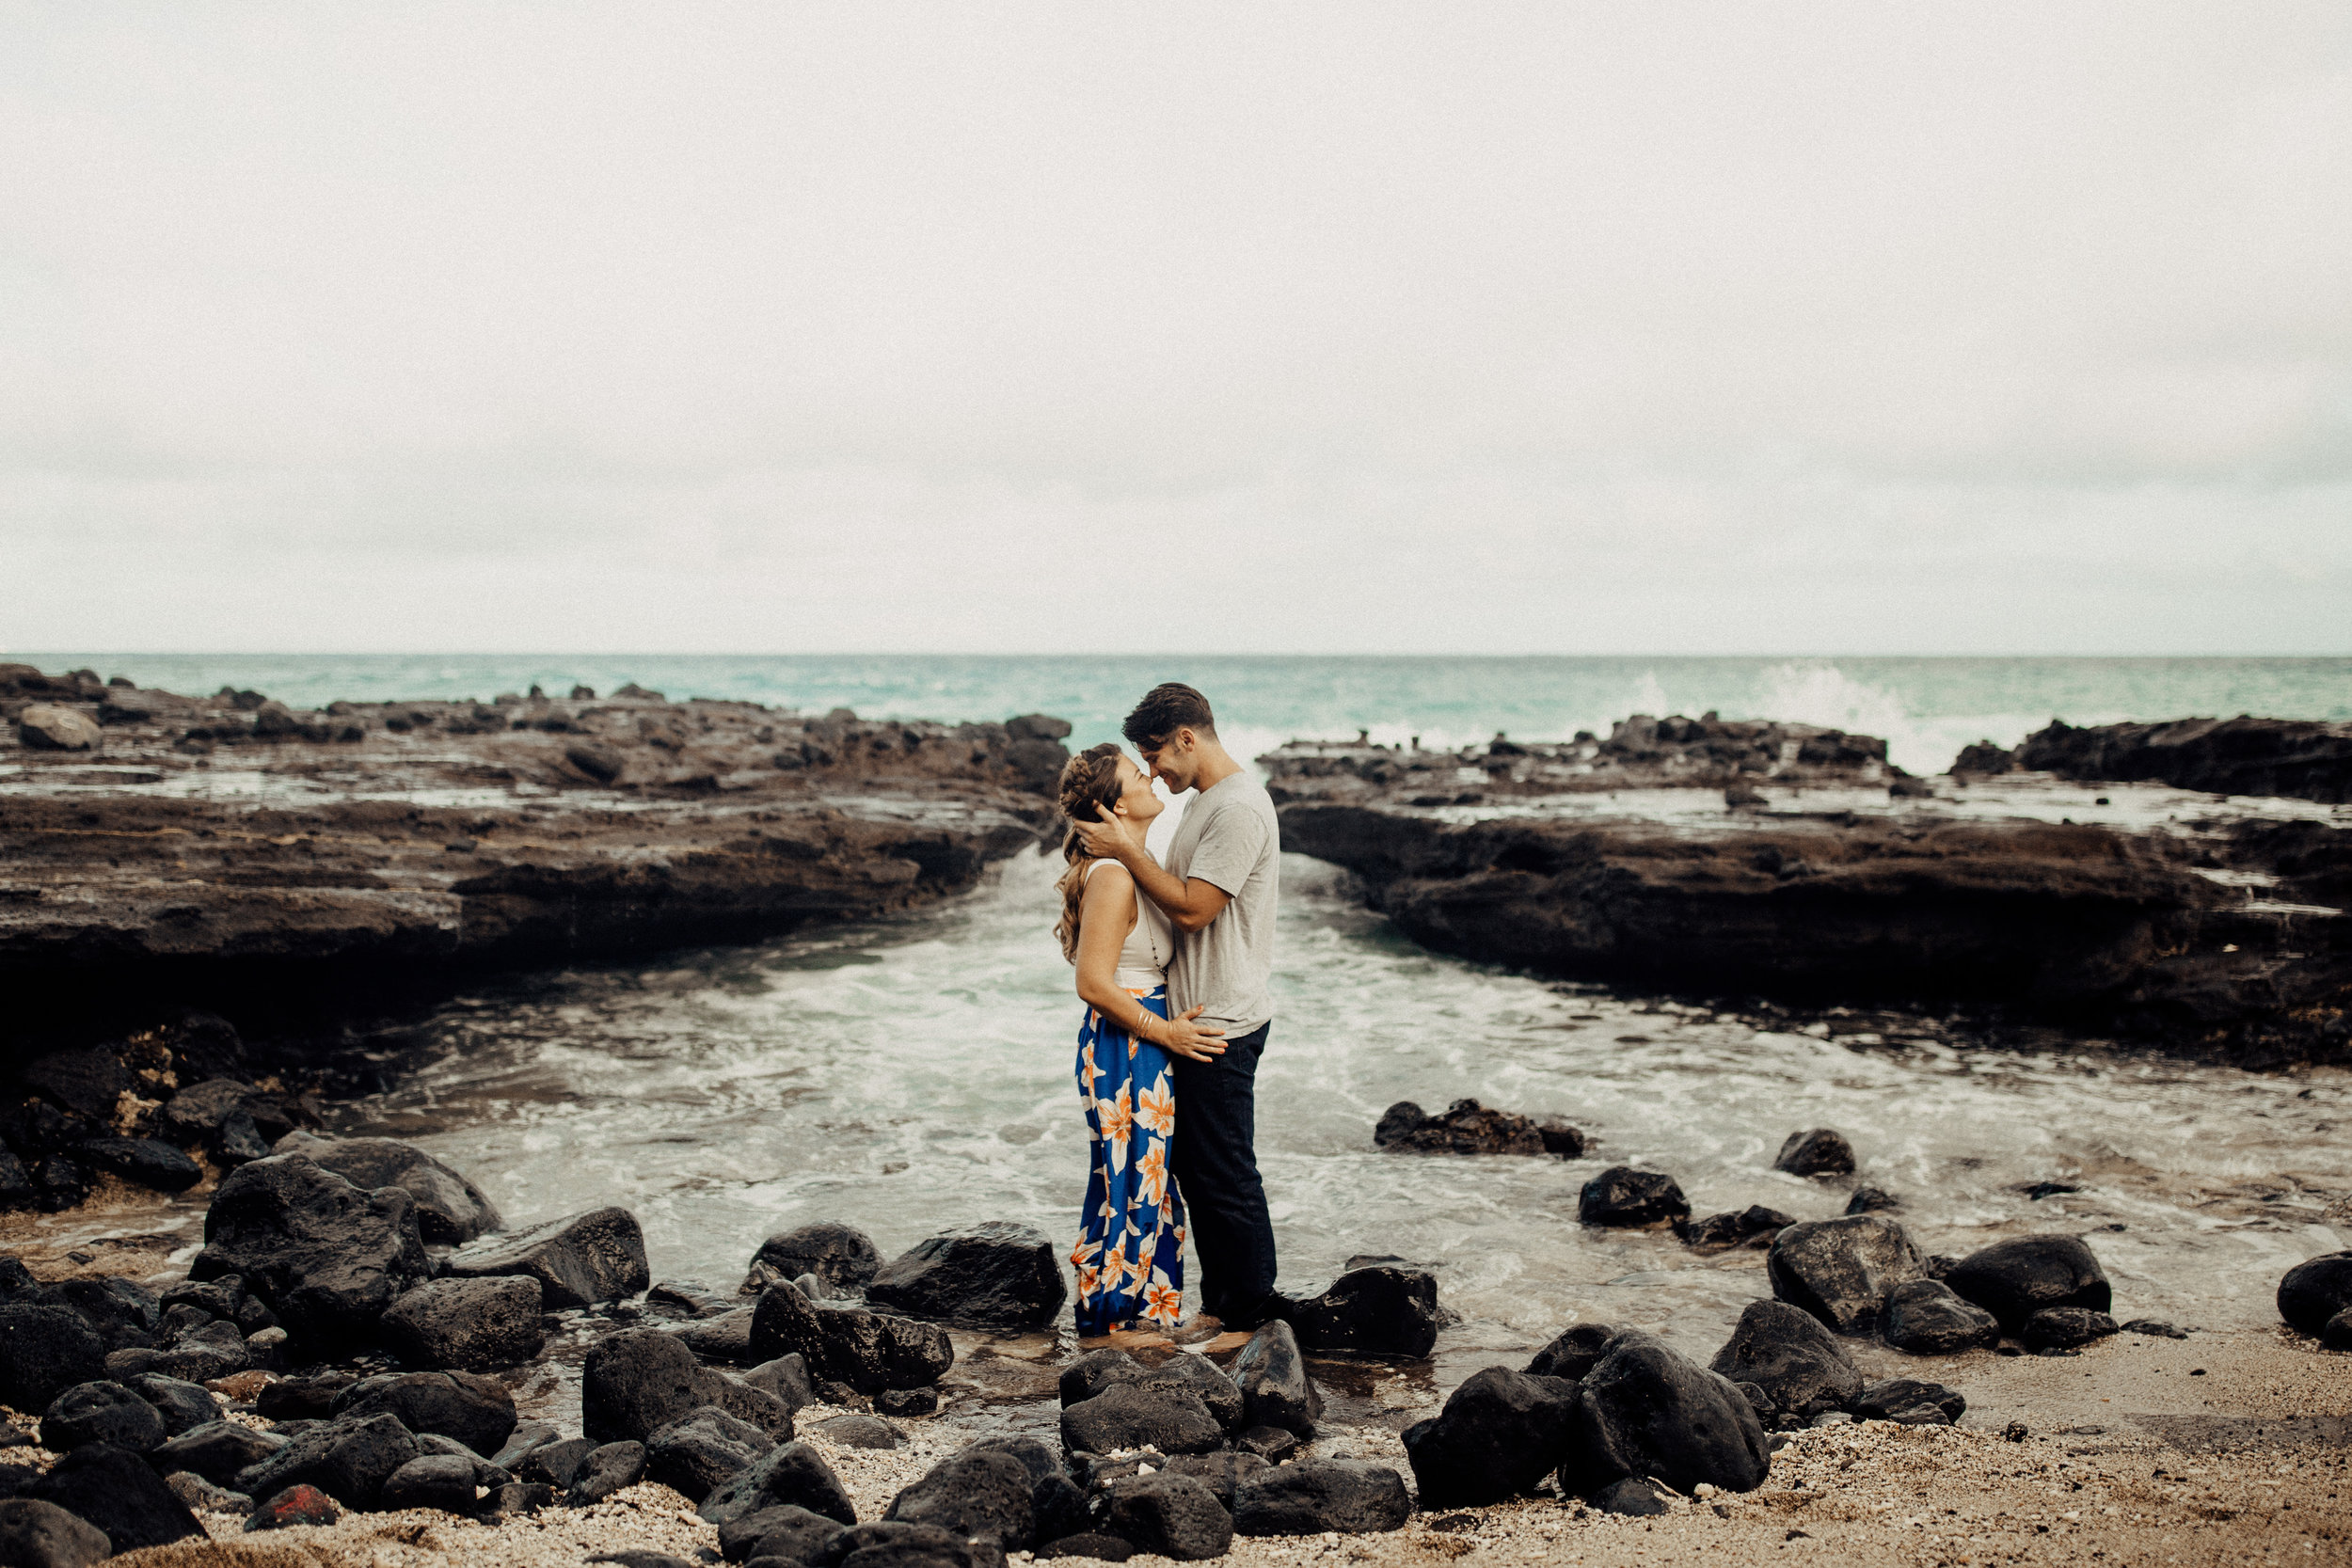 honolulu-wedding-photographer-99.jpg